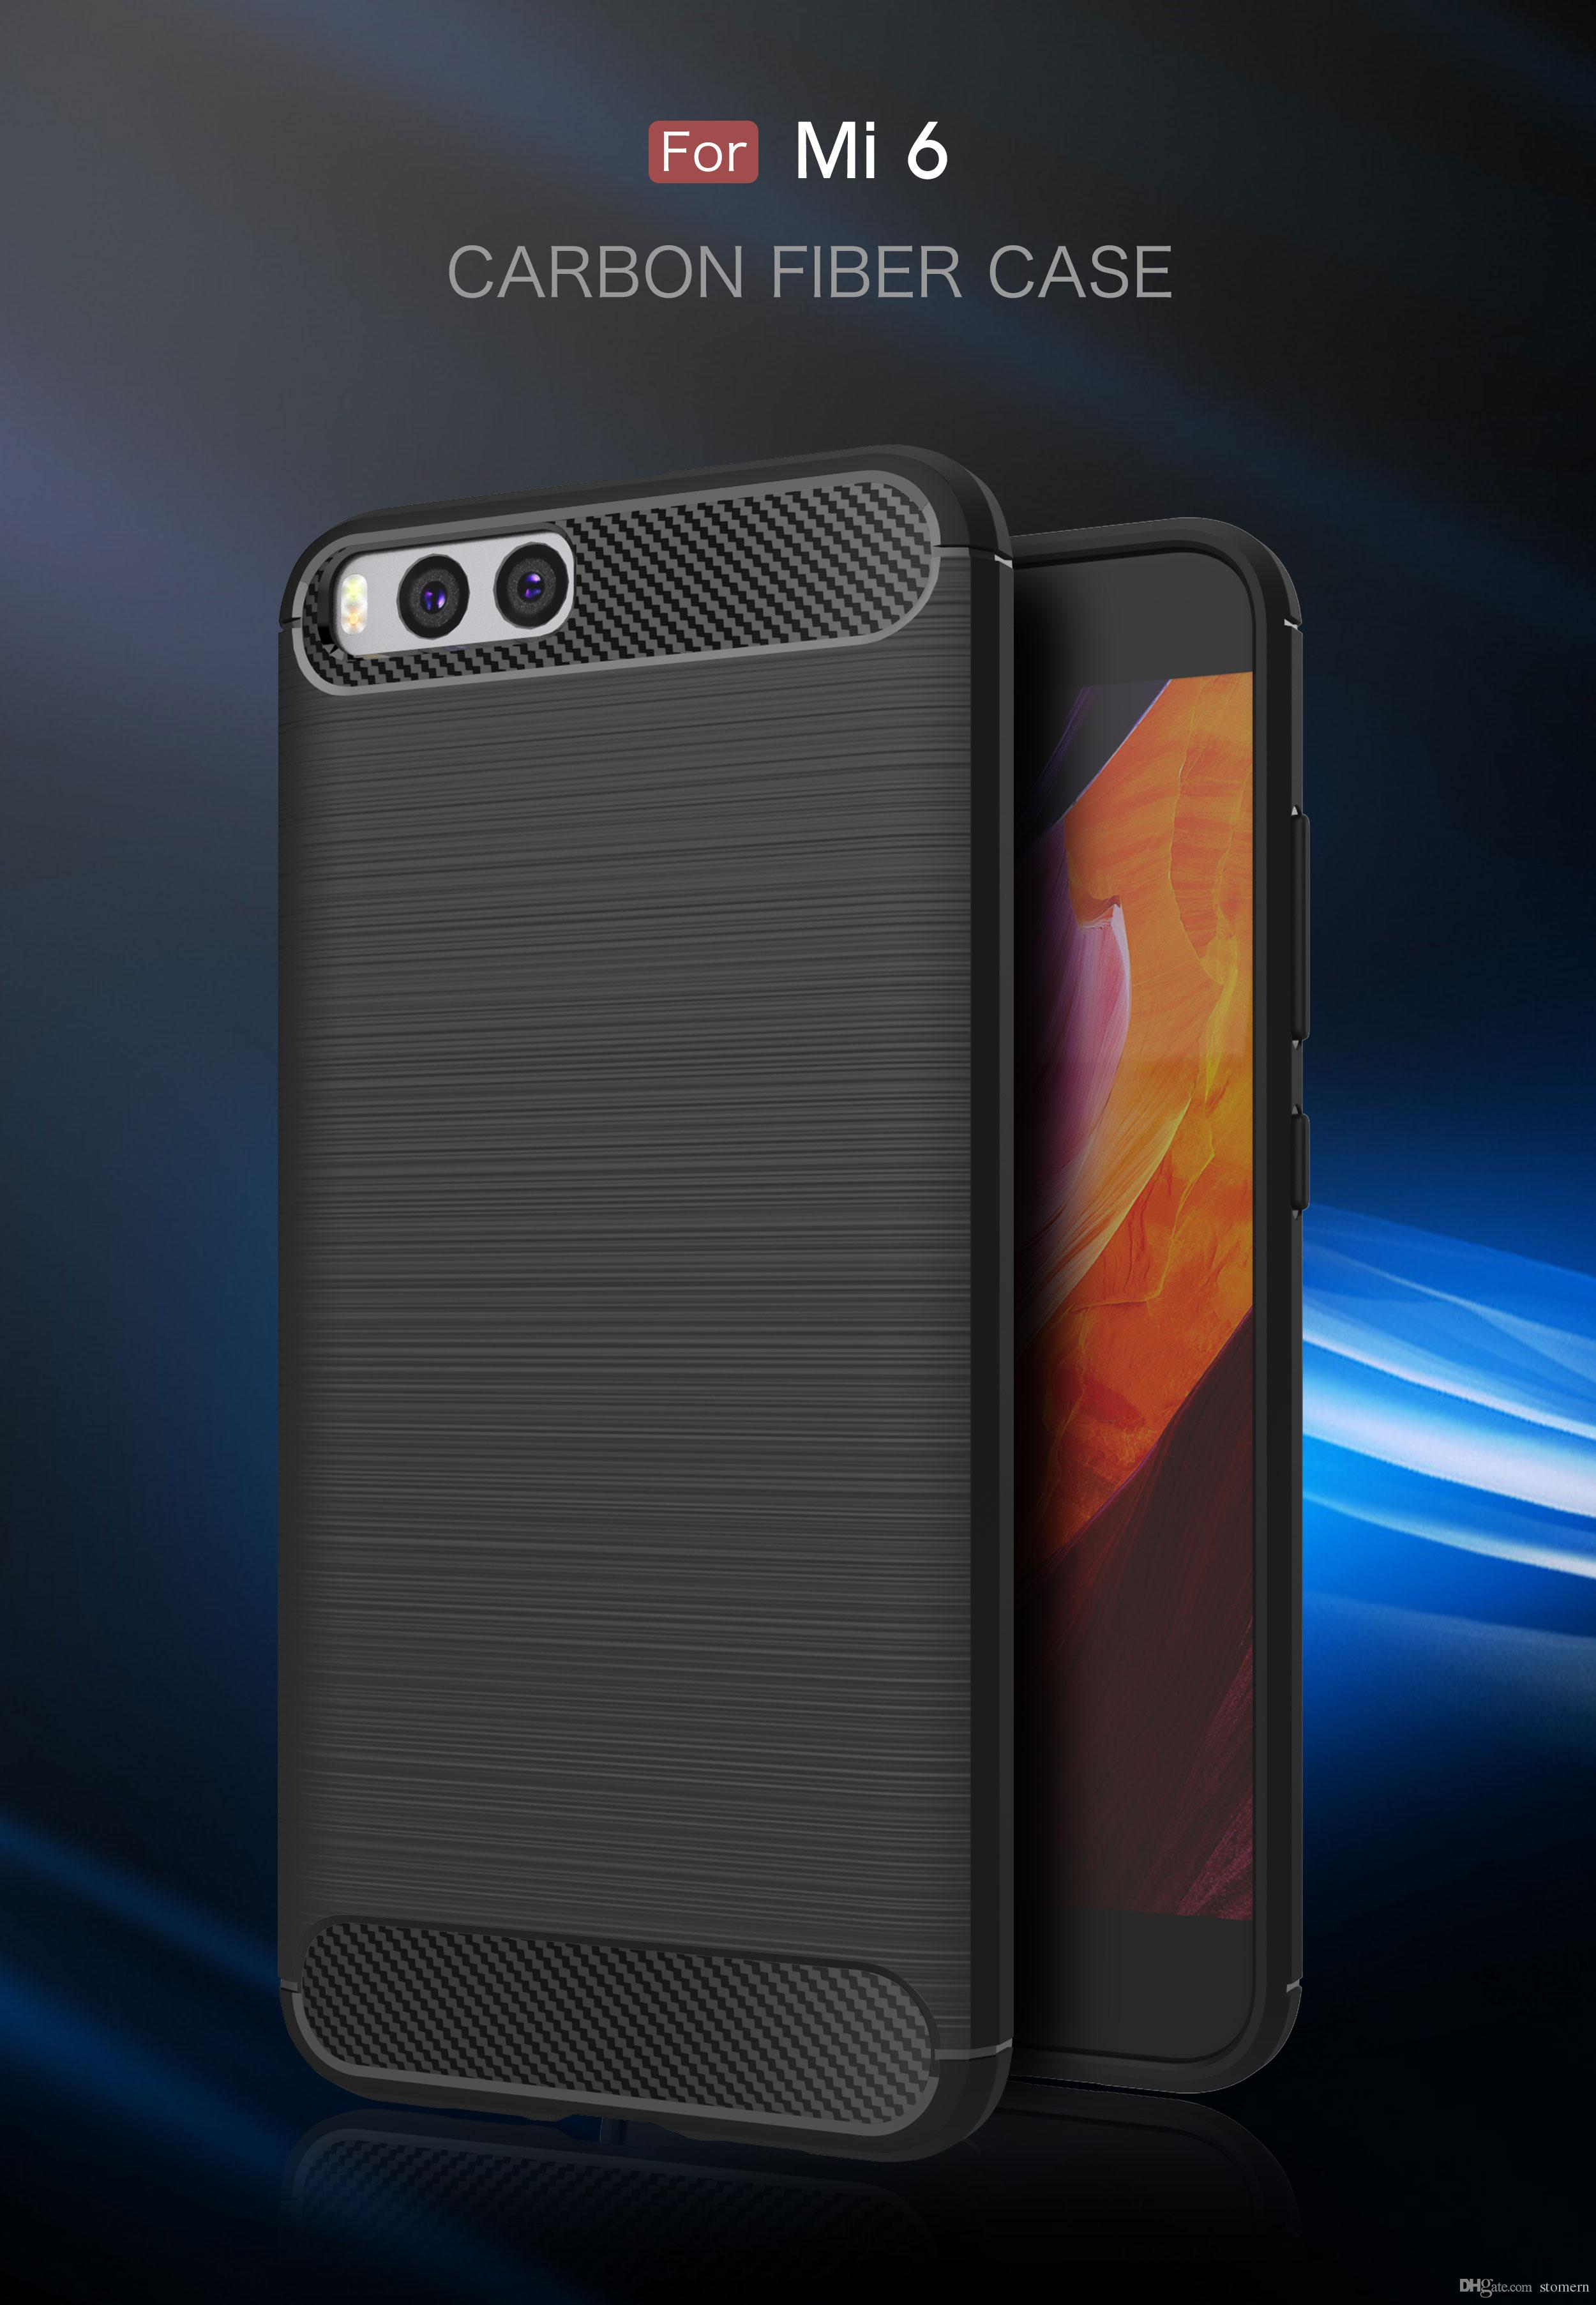 Carbon Fiber Case For Xiaomi Note 3 Mix 2 Redmi 5a Prime Max Temperred Glass Softcase Mi 6 Plus 5x A1 Brushed Silicone Soft Rubber Back Cover Armor Rugged Glitter Cell Phone